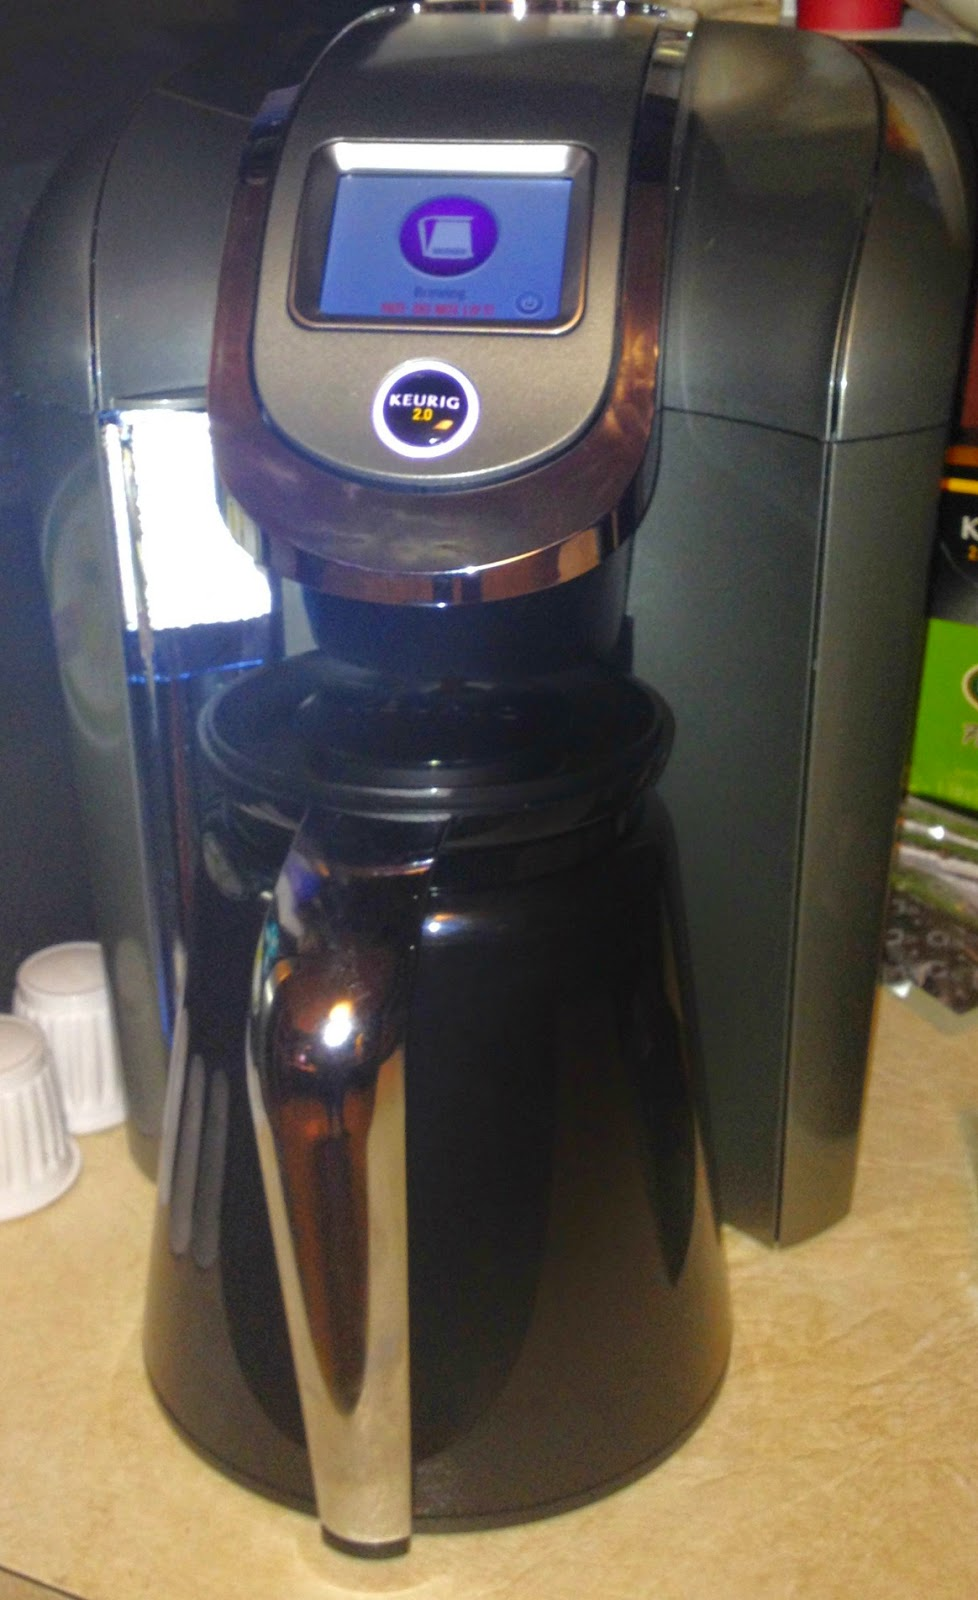 #HelloKeurig from Influenster